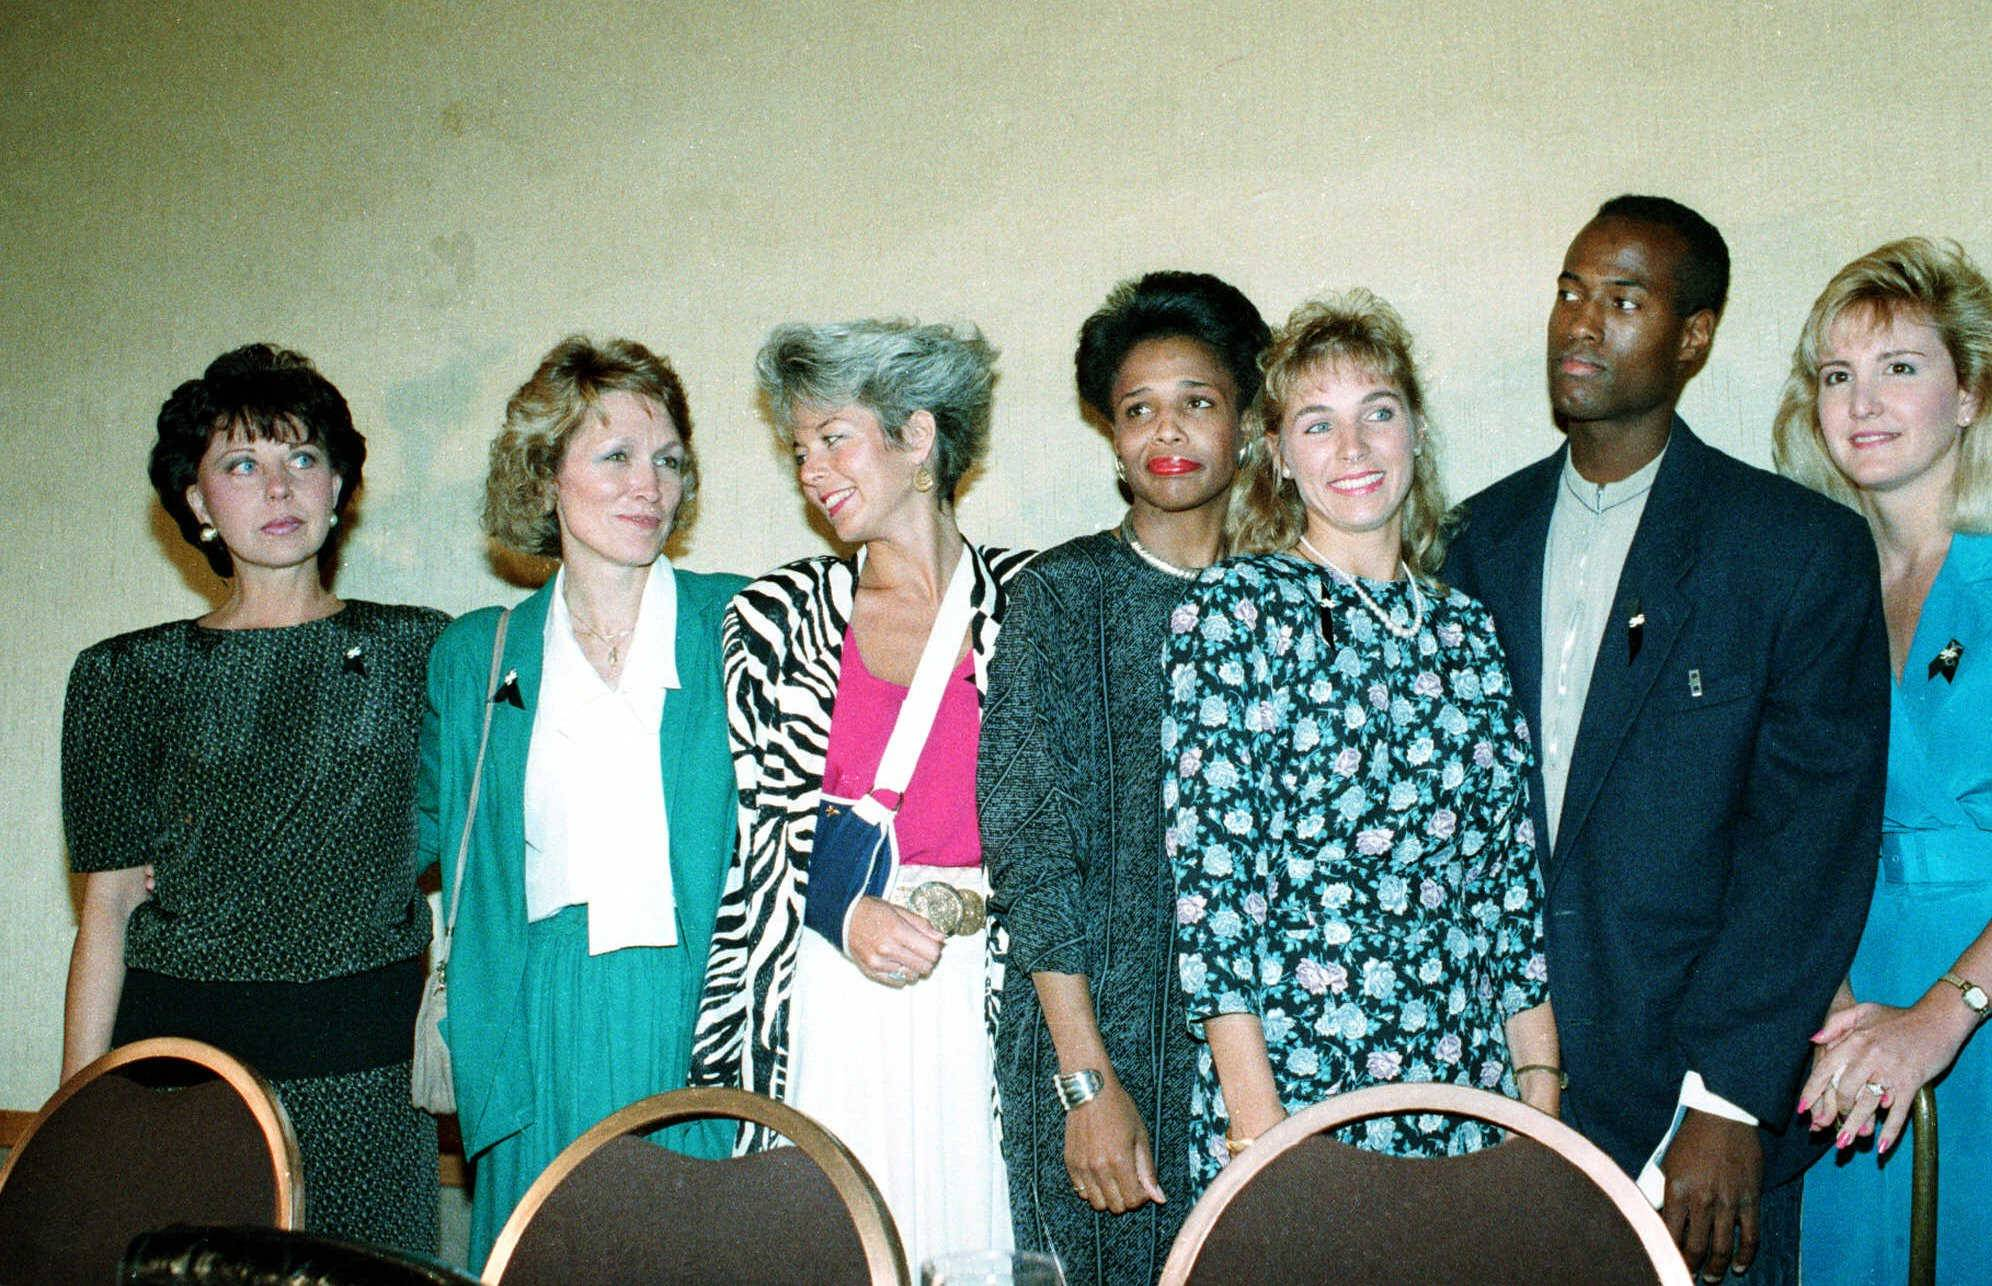 Flight attendants who aided the victims of United Flight 232 crash in in Sioux City, Iowa, pose July 28,1989 at a news conference in Chicago. From left, are: Georgeanne Del Castillo, Janice Brown, Virginia Murray, Donna McGrady, Susan White, and Timothy Owens.  Woman at right is unidentified.